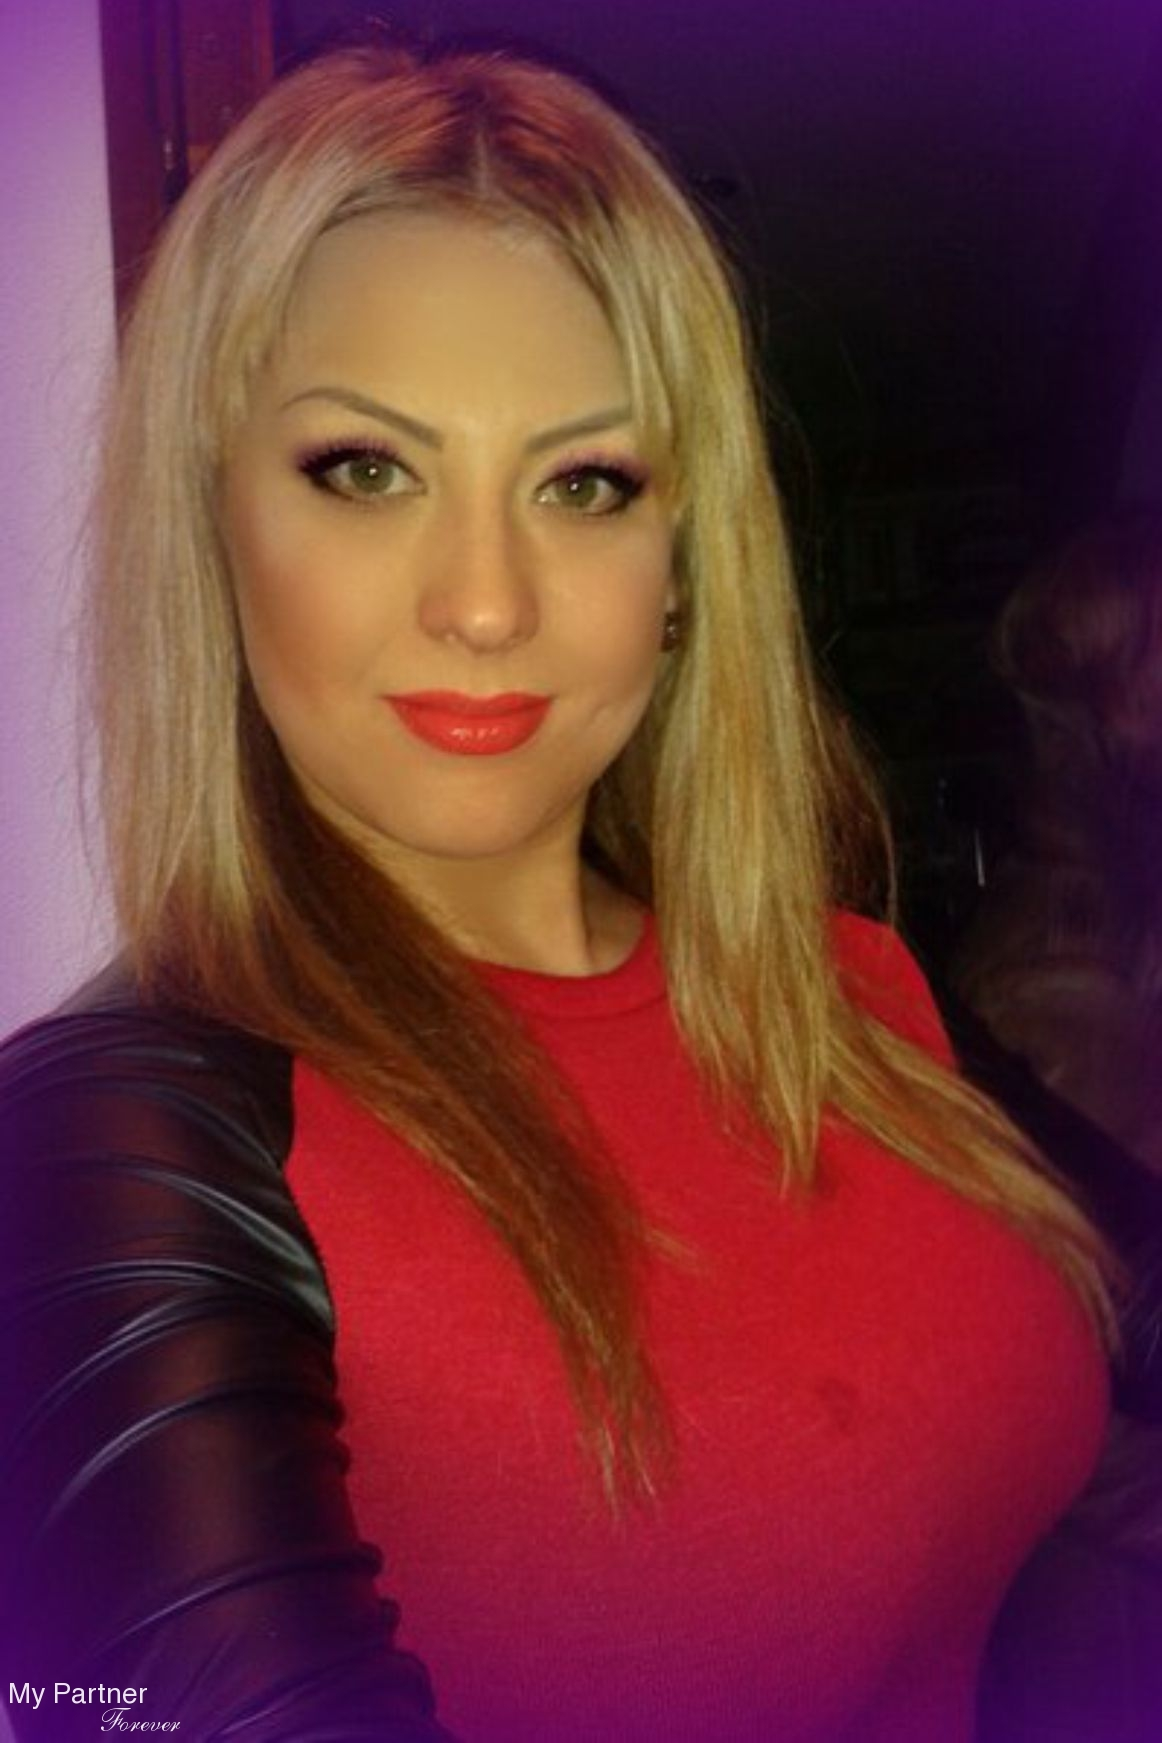 Singles dating sites edmonton